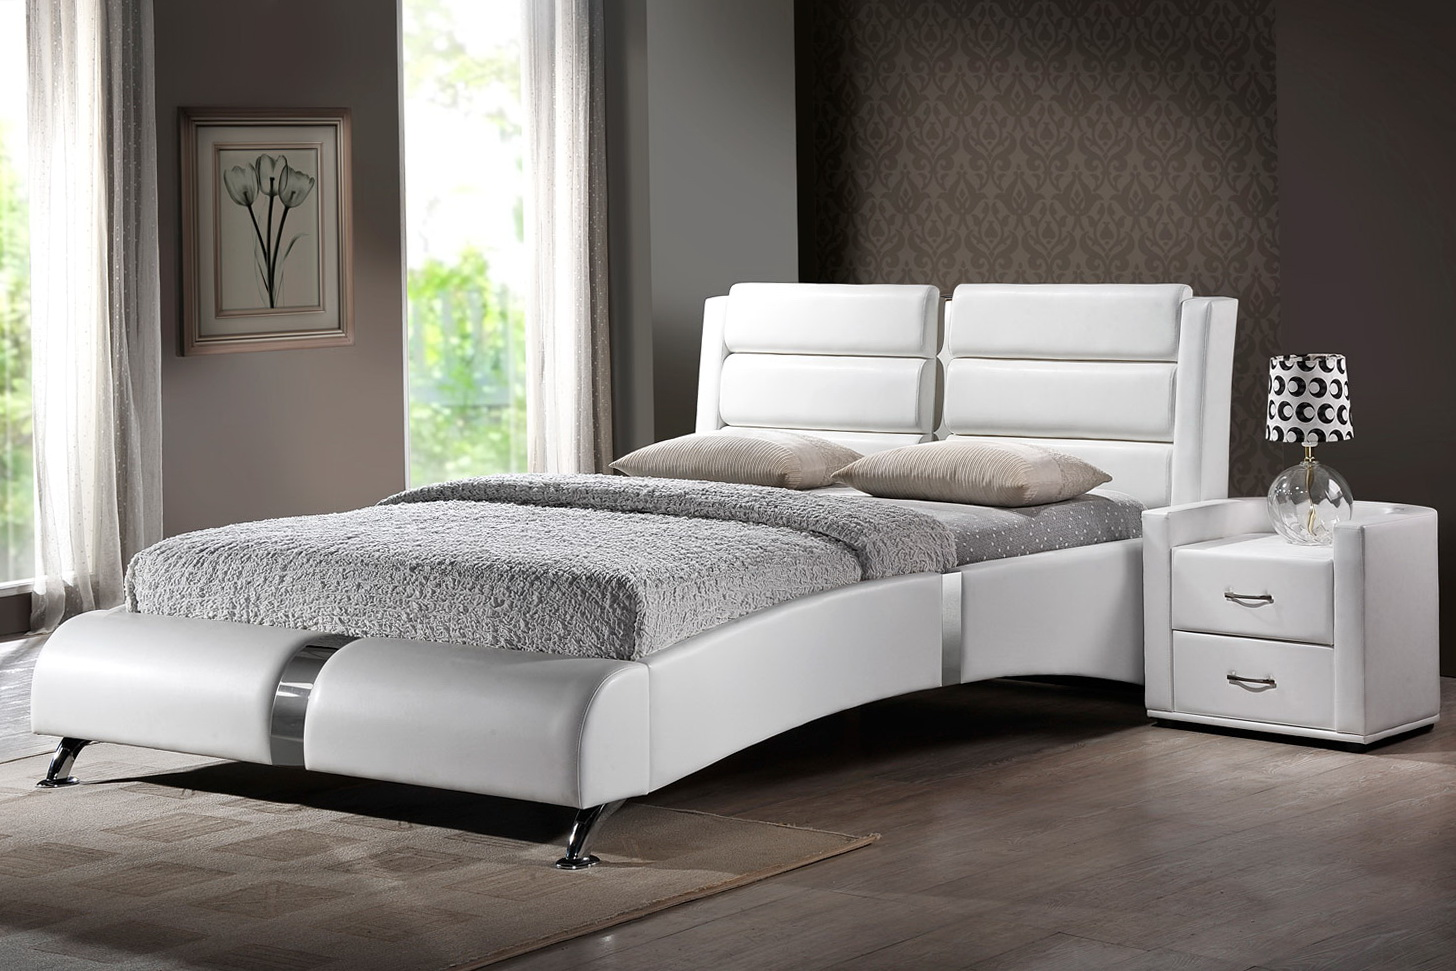 Modern Platform Beds For Sale